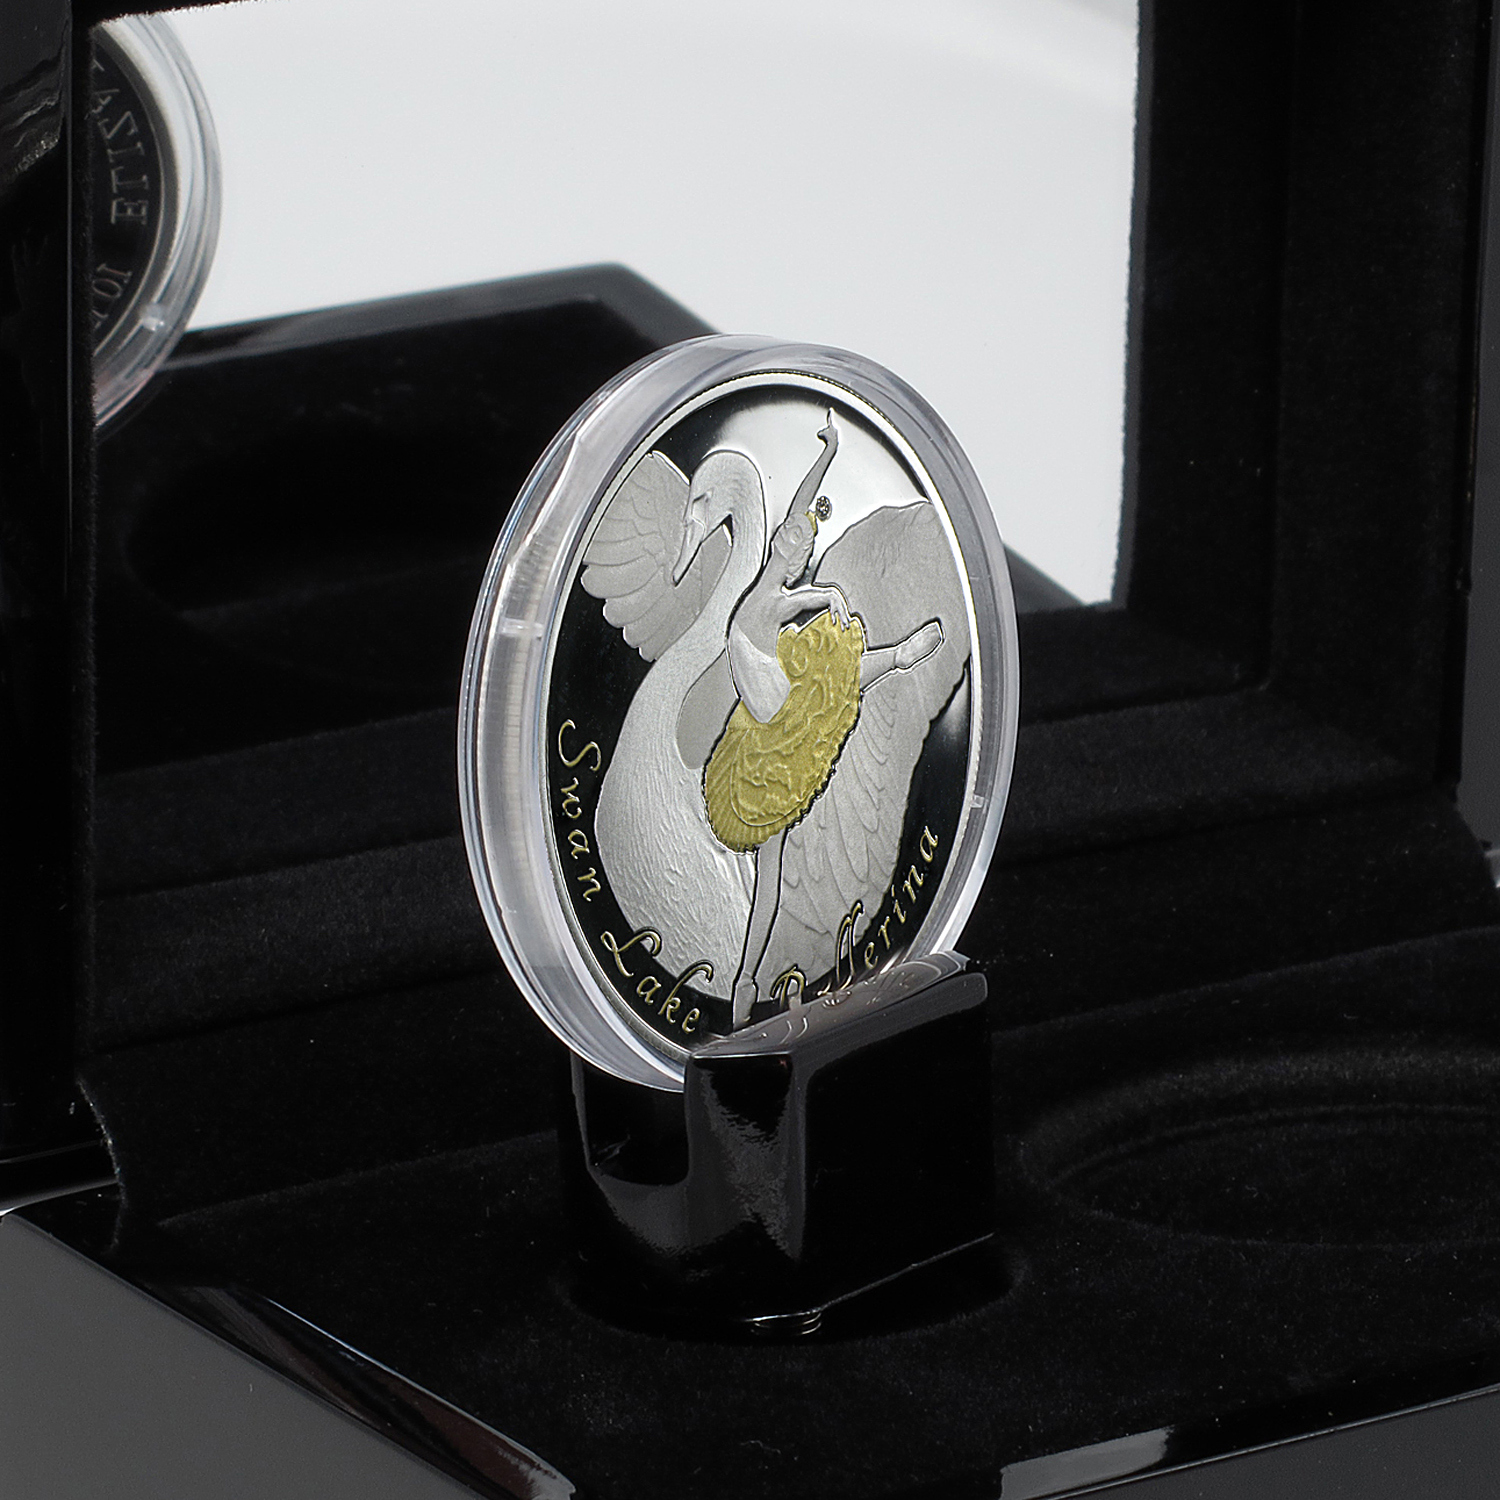 2014 Cook Islands Silver $10 Swan Lake Diamond Ballerina Coin